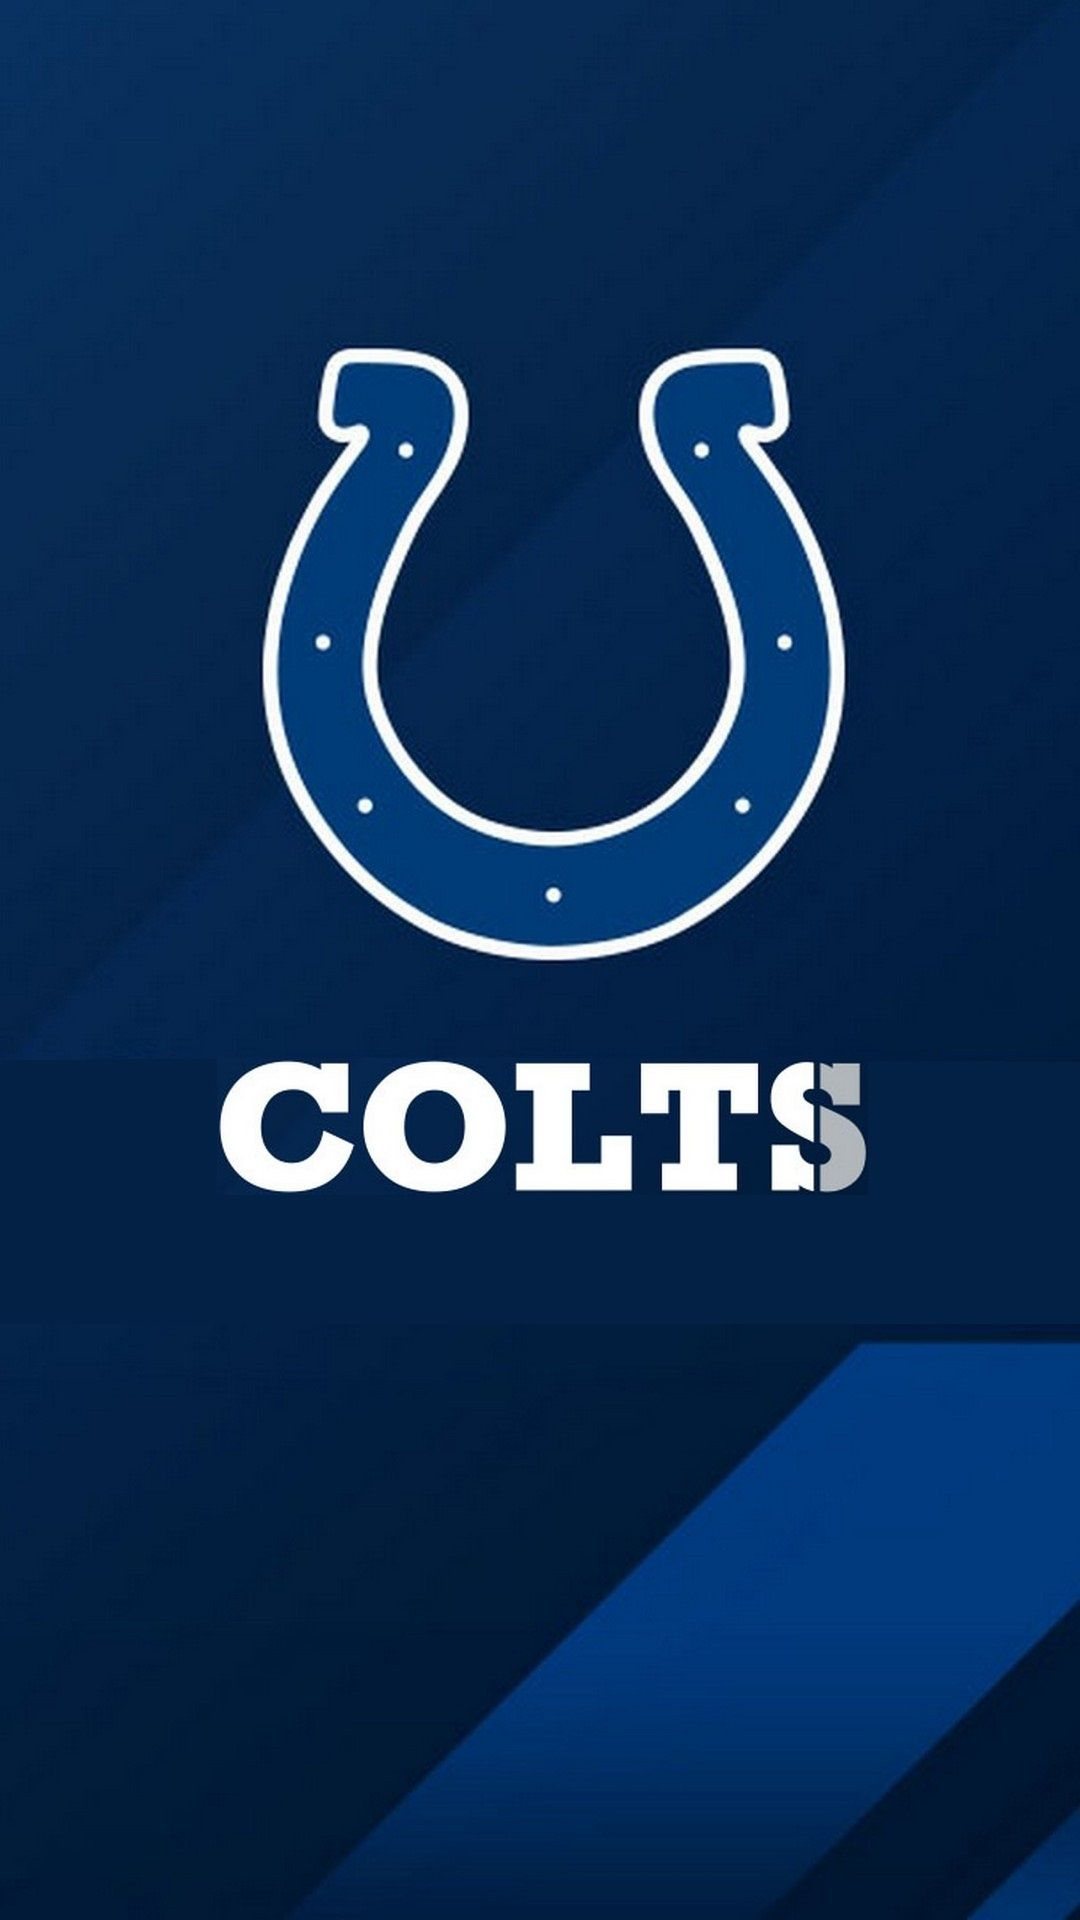 Wallpaper Indianapolis Colts Iphone 2021 Nfl Football Wallpapers Nfl Football Wallpaper Indianapolis Colts Football Wallpaper